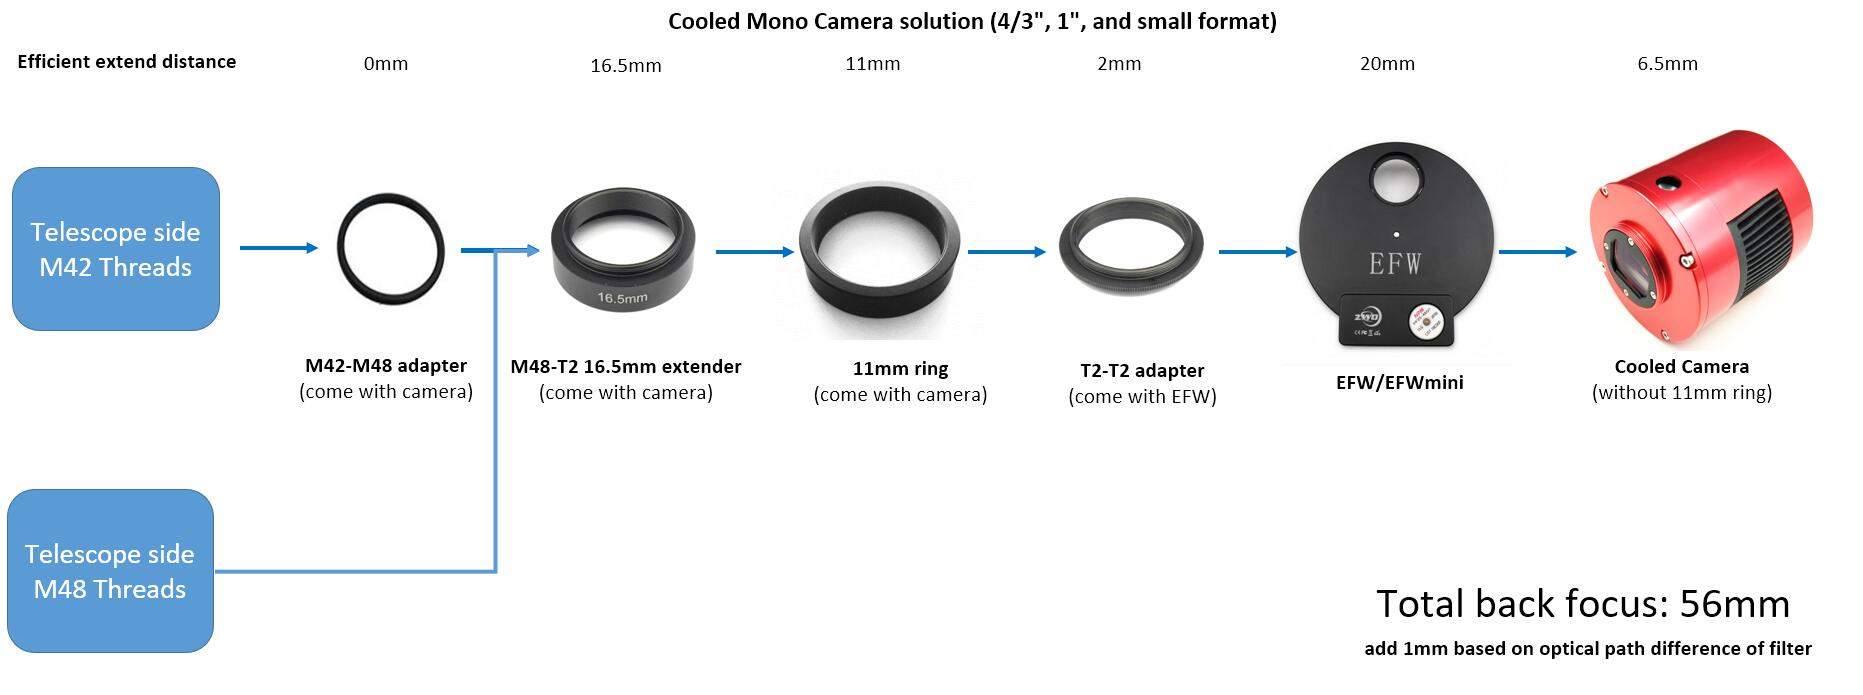 Cooled Mono Camera solution